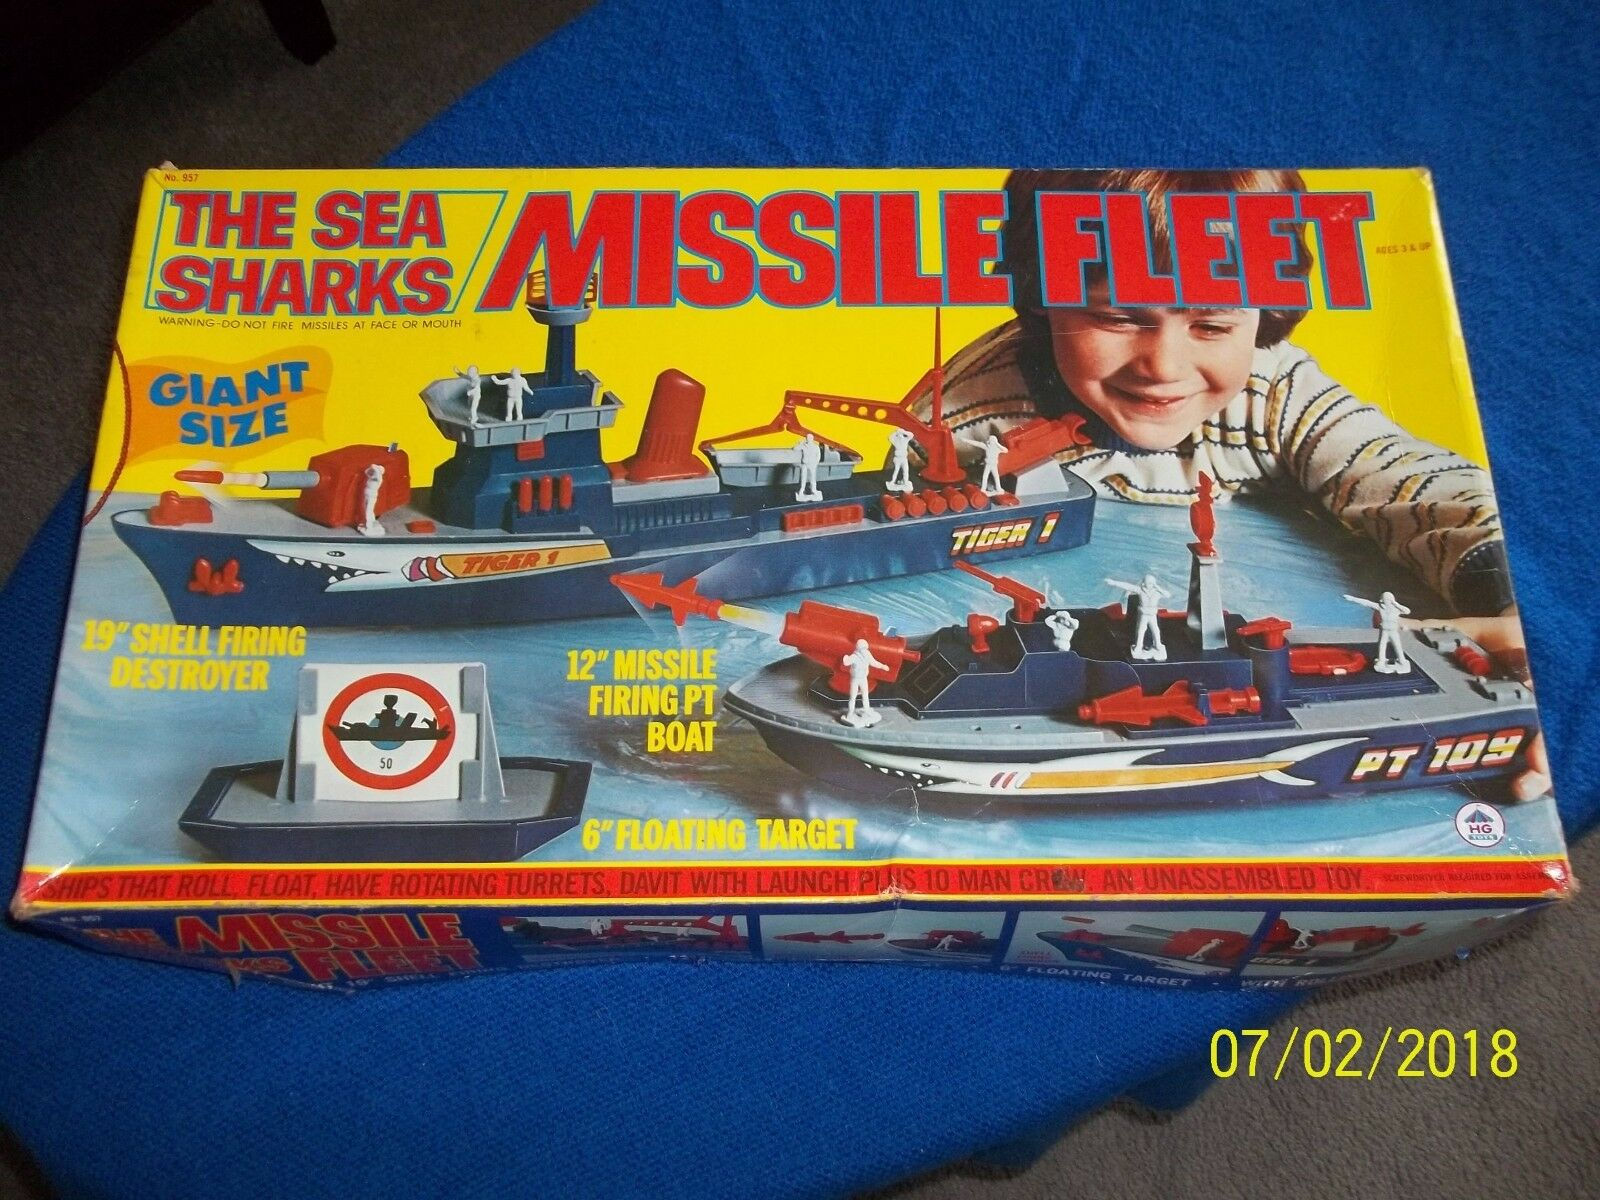 RARE Vintage HG TOYS THE SEA SHARKS MISSILE FLEET  in BOX  957 LOOK BUY IT NOW